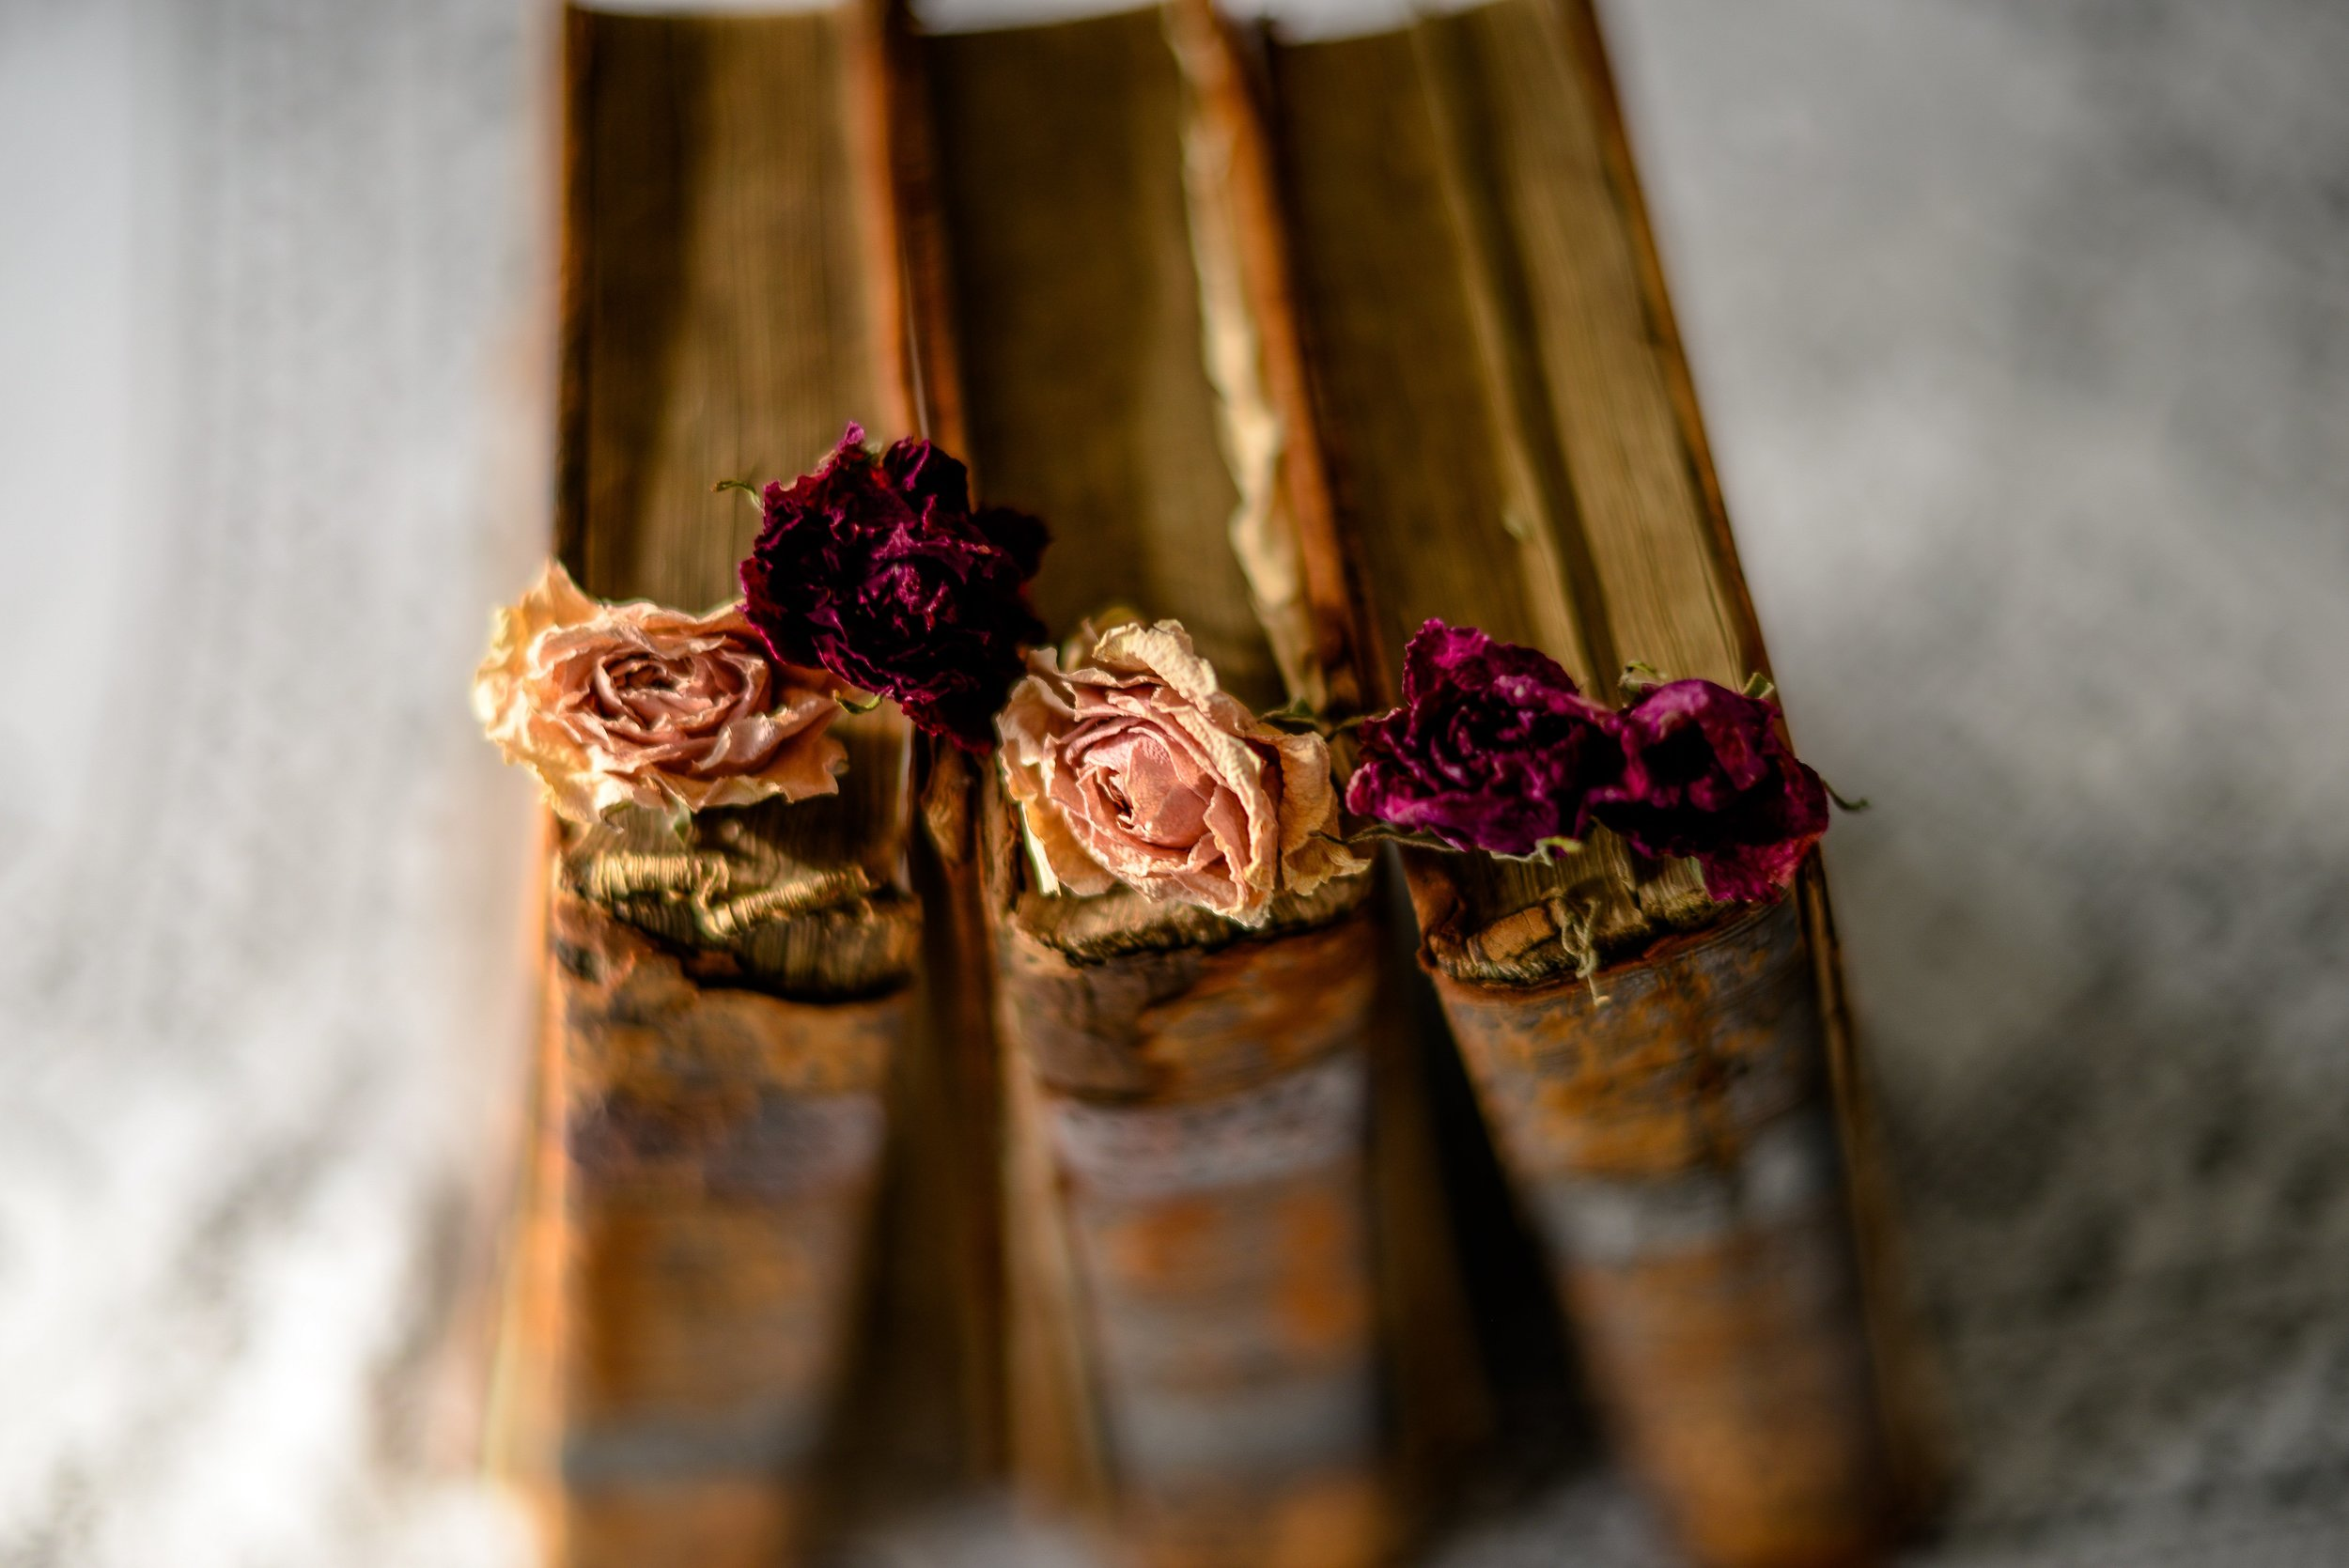 2-books and dried roses-6.jpg